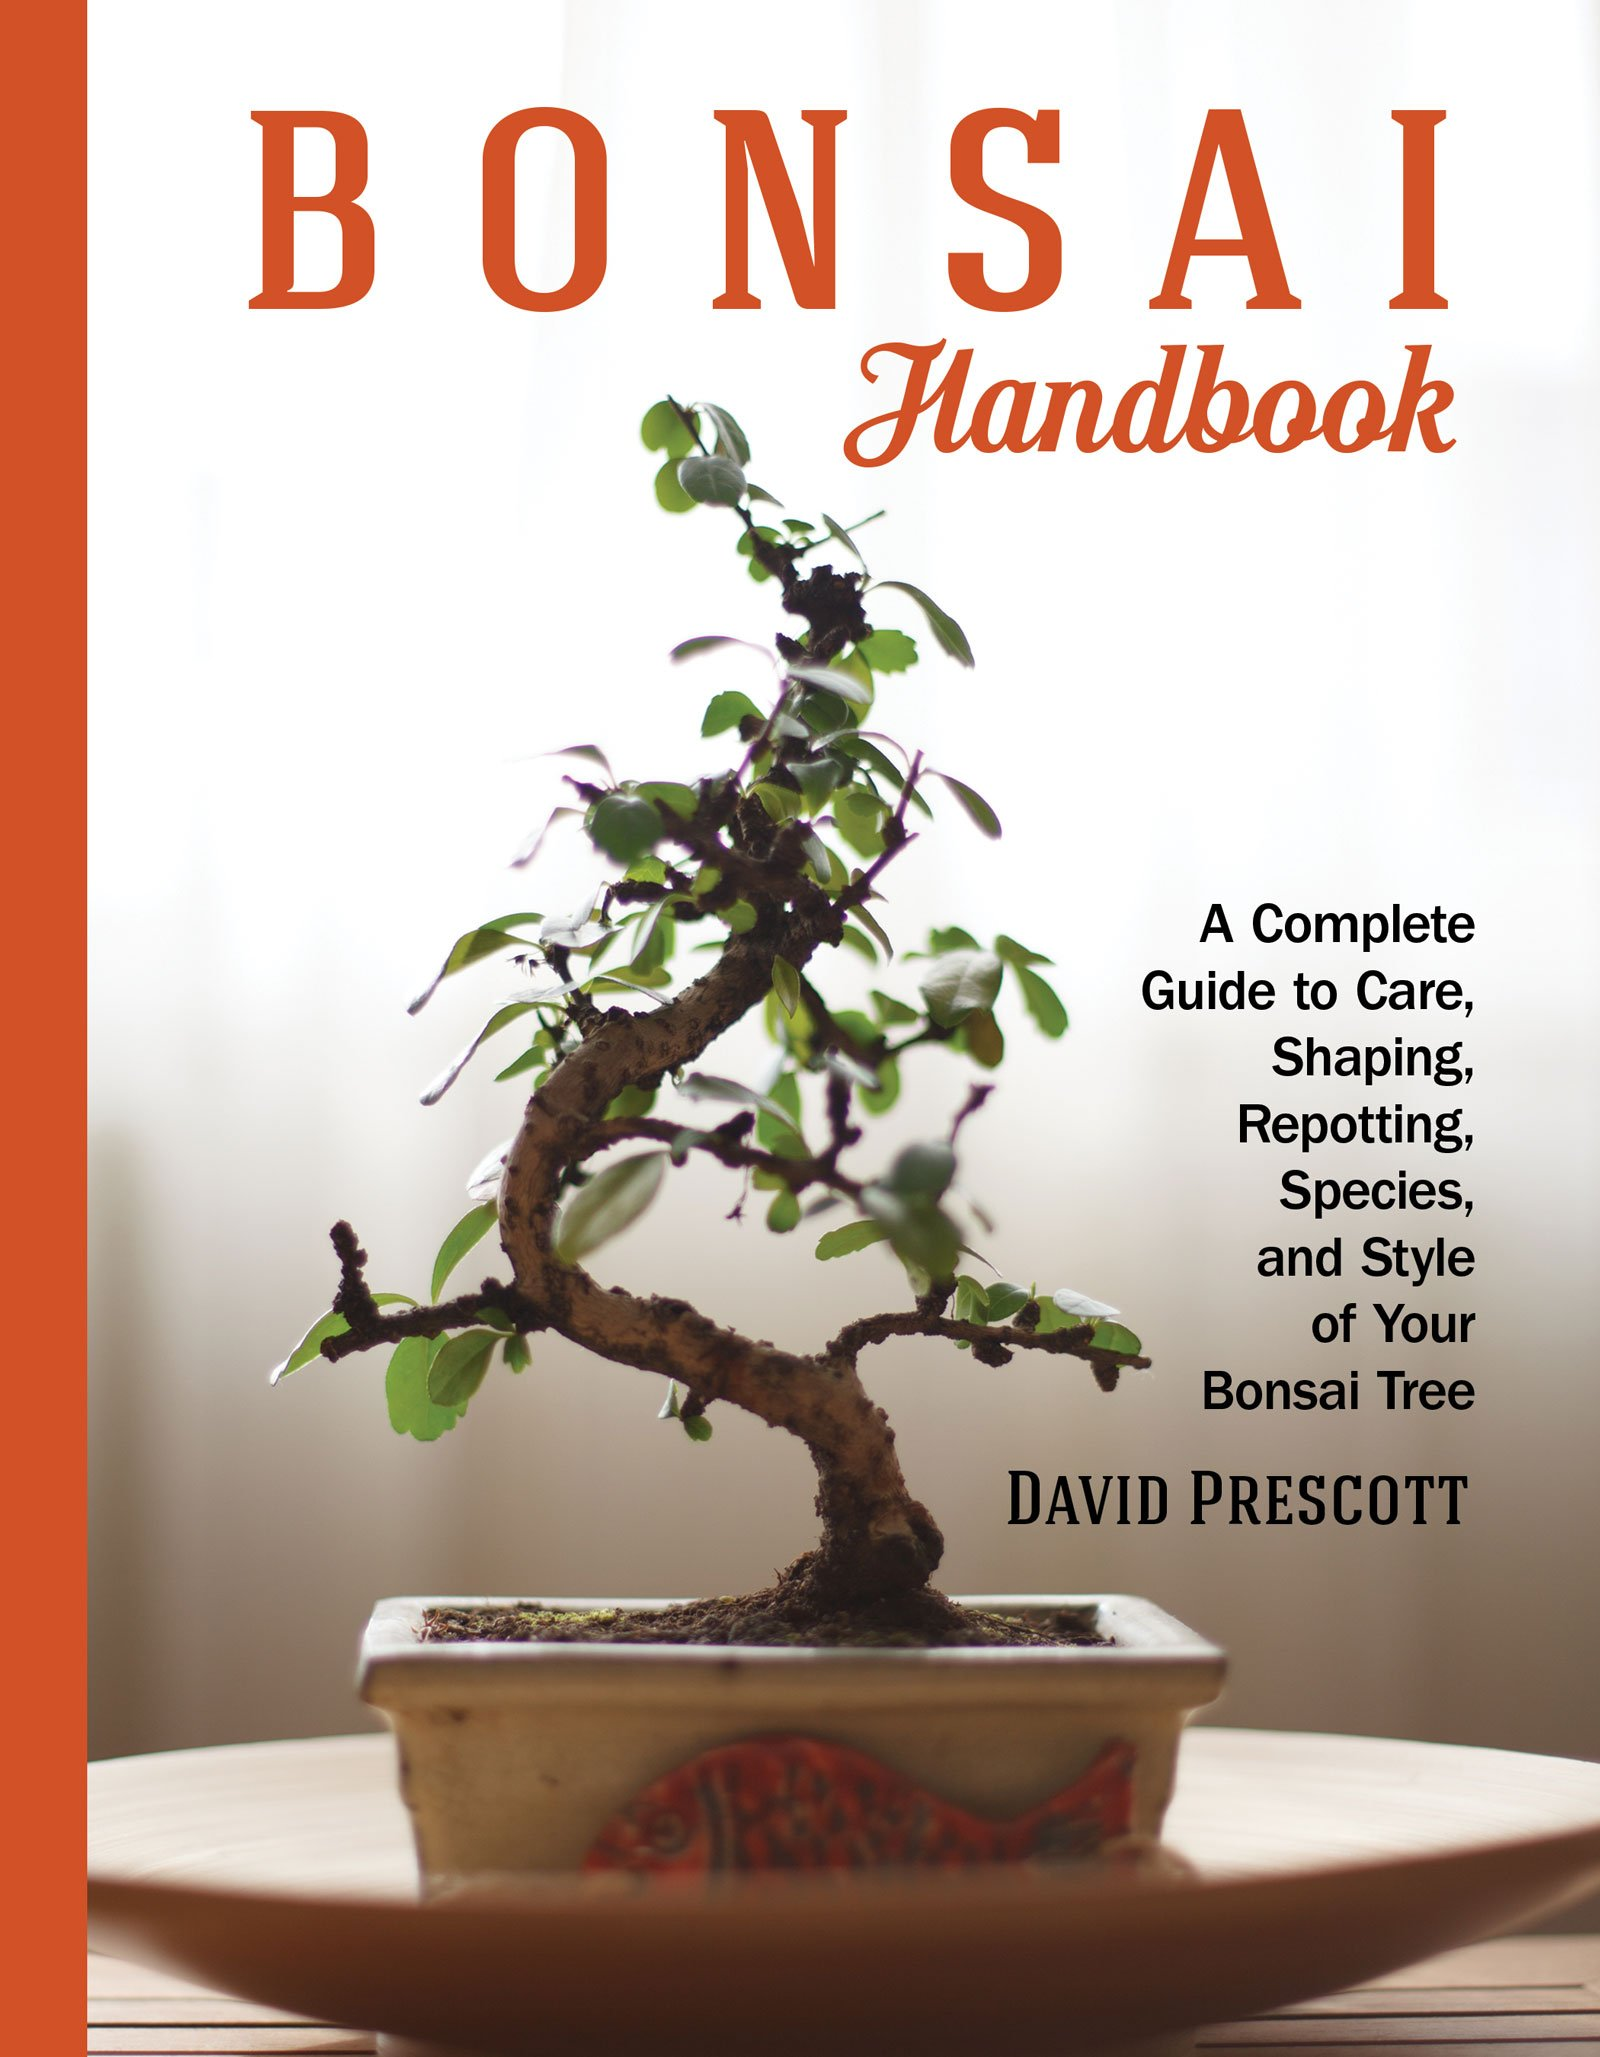 Buy Bonsai Handbook A Complete Guide To Care Shaping Repotting Species And Style Of Your Bonsai Tree Book Online At Low Prices In India Bonsai Handbook A Complete Guide To Care